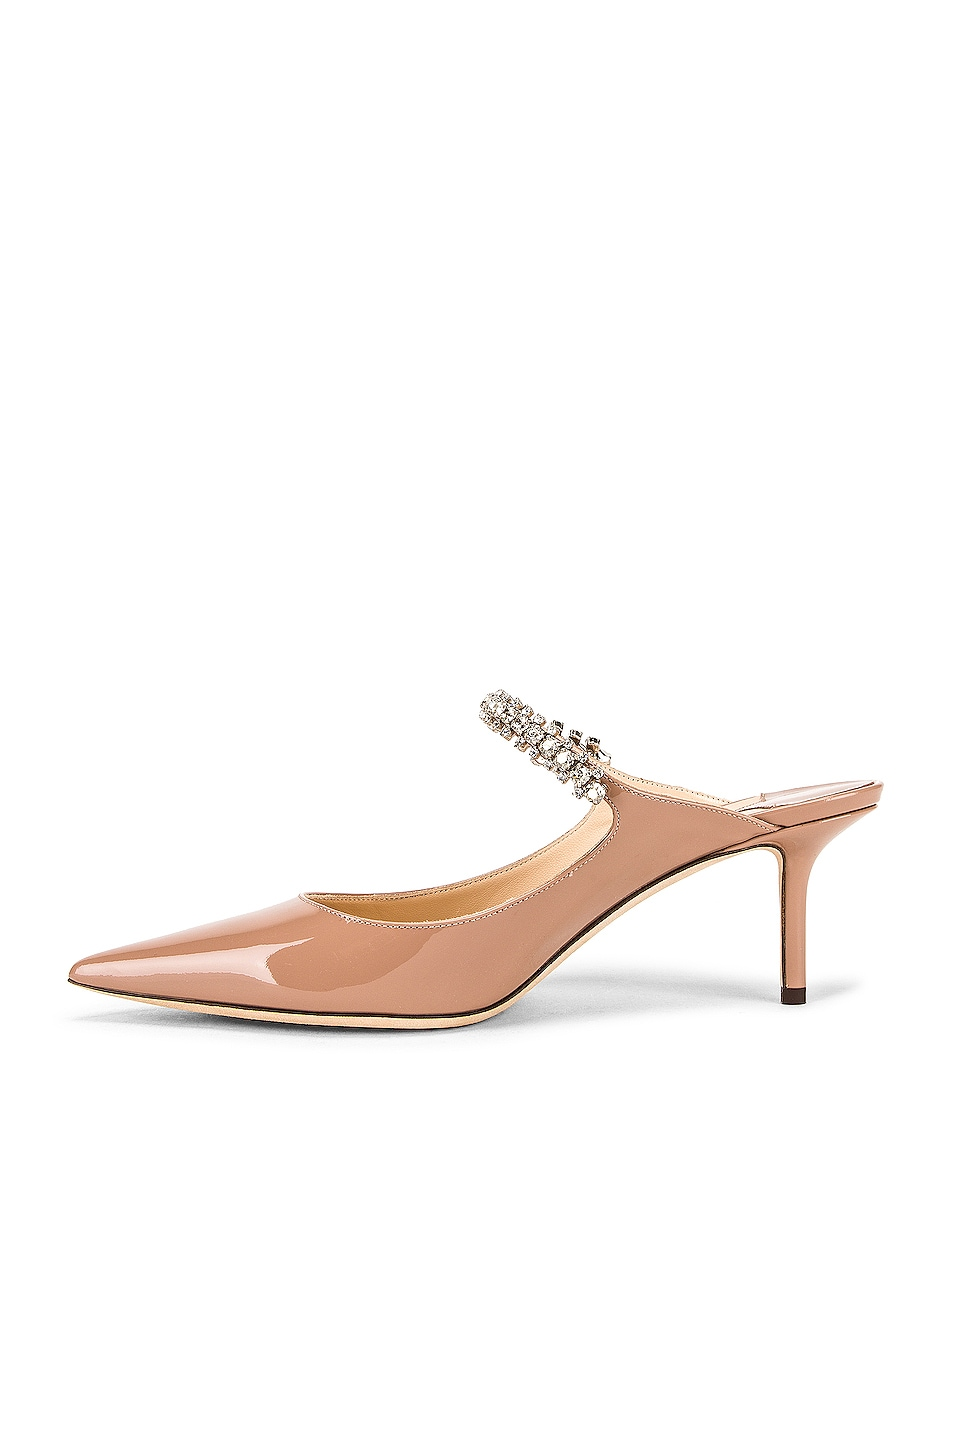 Image 5 of Jimmy Choo Bing 65 Patent Leather Heel in Ballet Pink